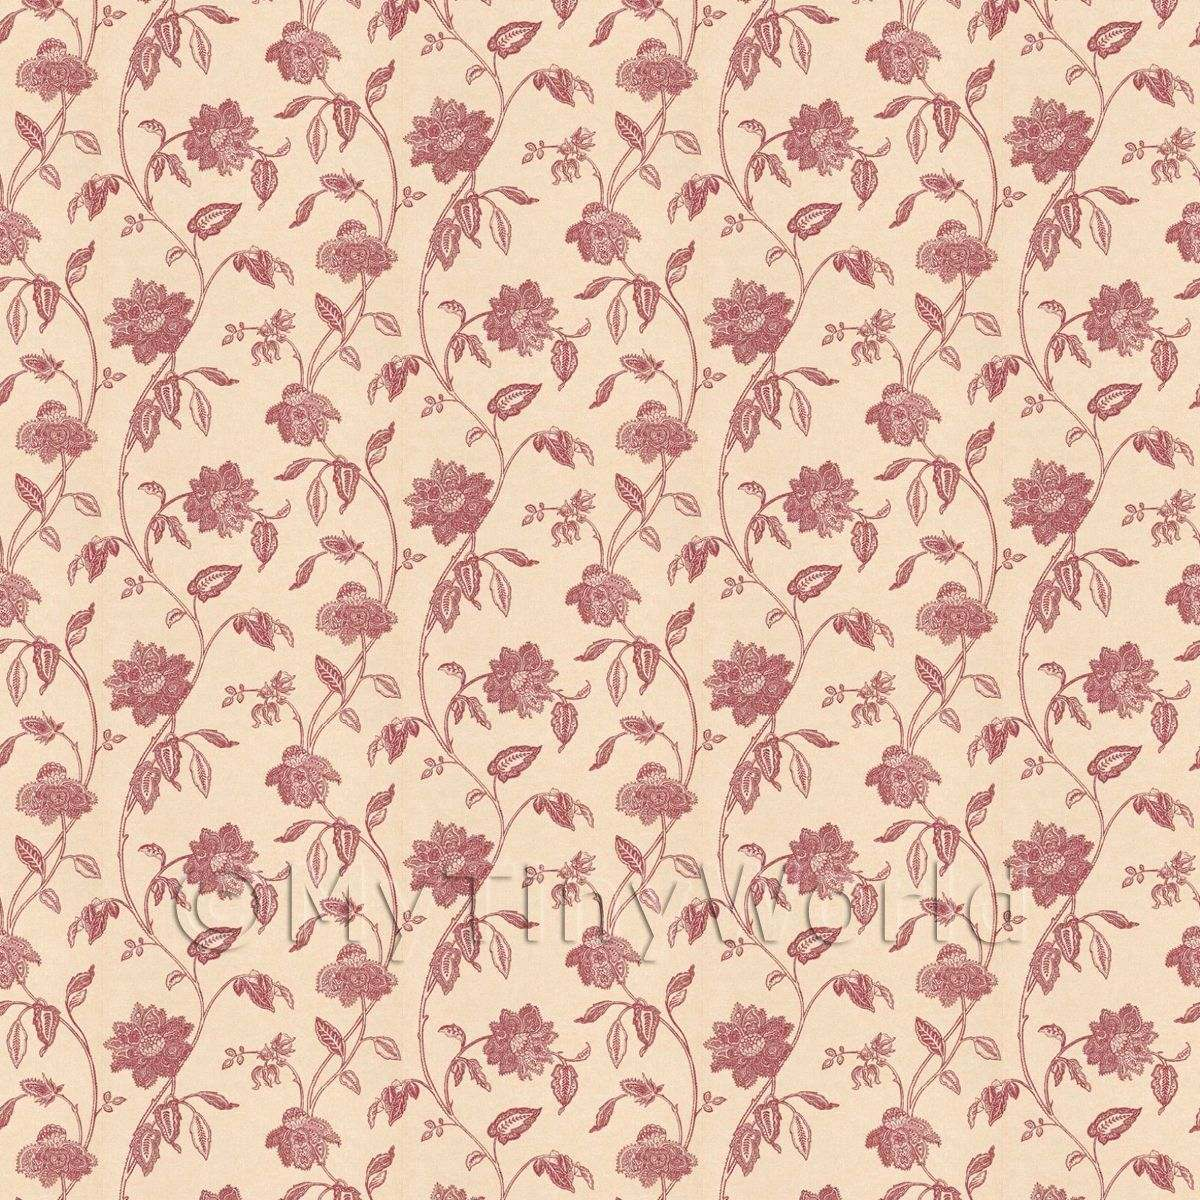 Dolls House Miniature Intricate Red Flower Wallpaper